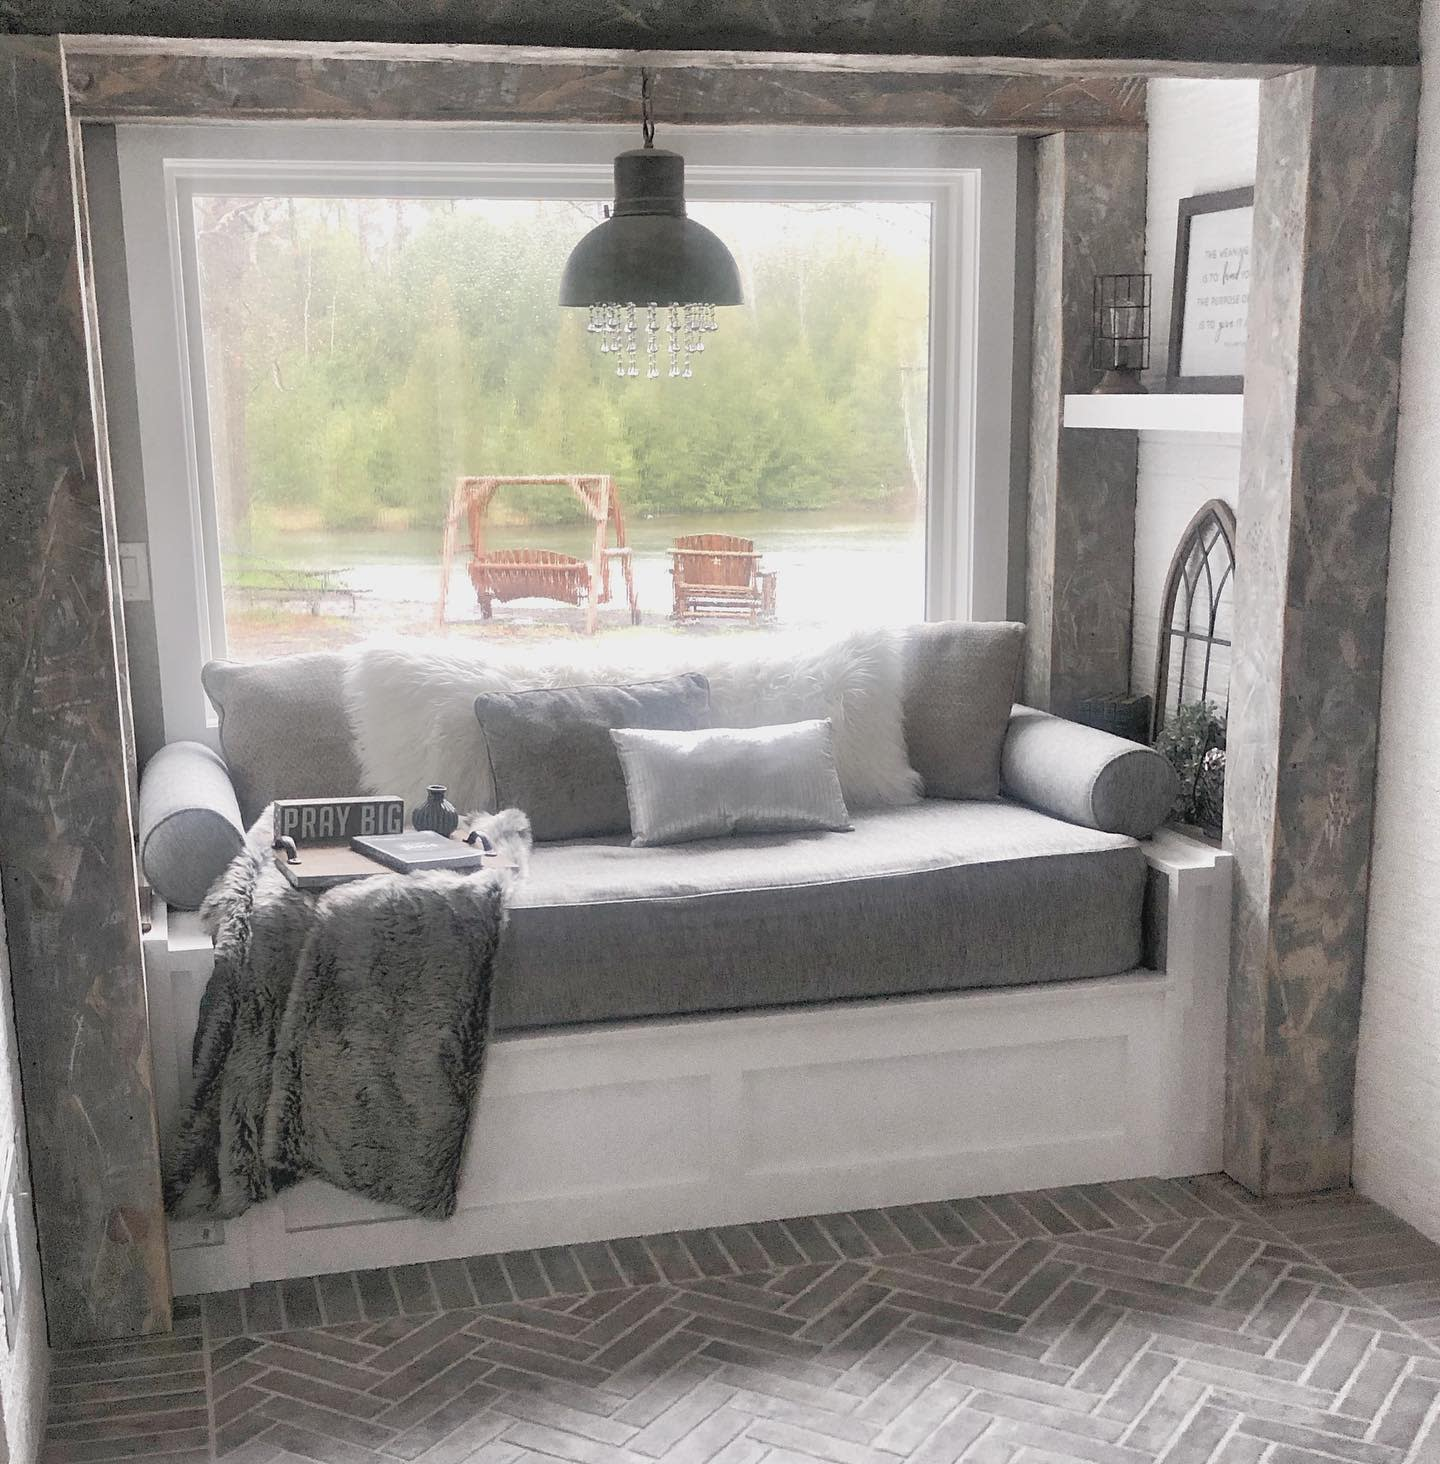 Built-in Daybed Ideas -kira_turner